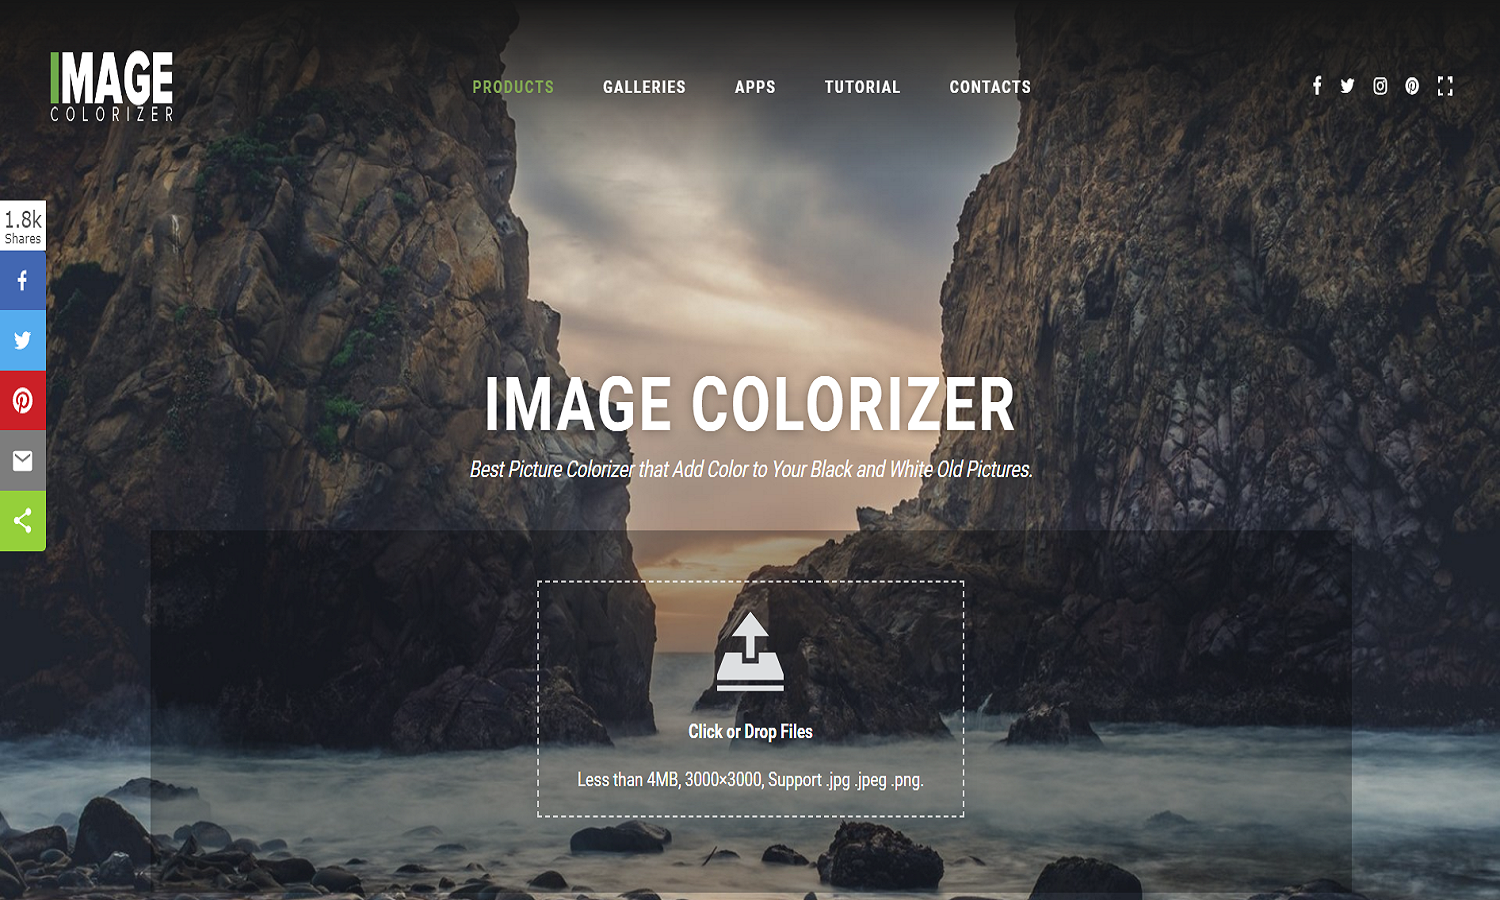 Image Colorizer Review: Honest Review of Free Image Colorizer App